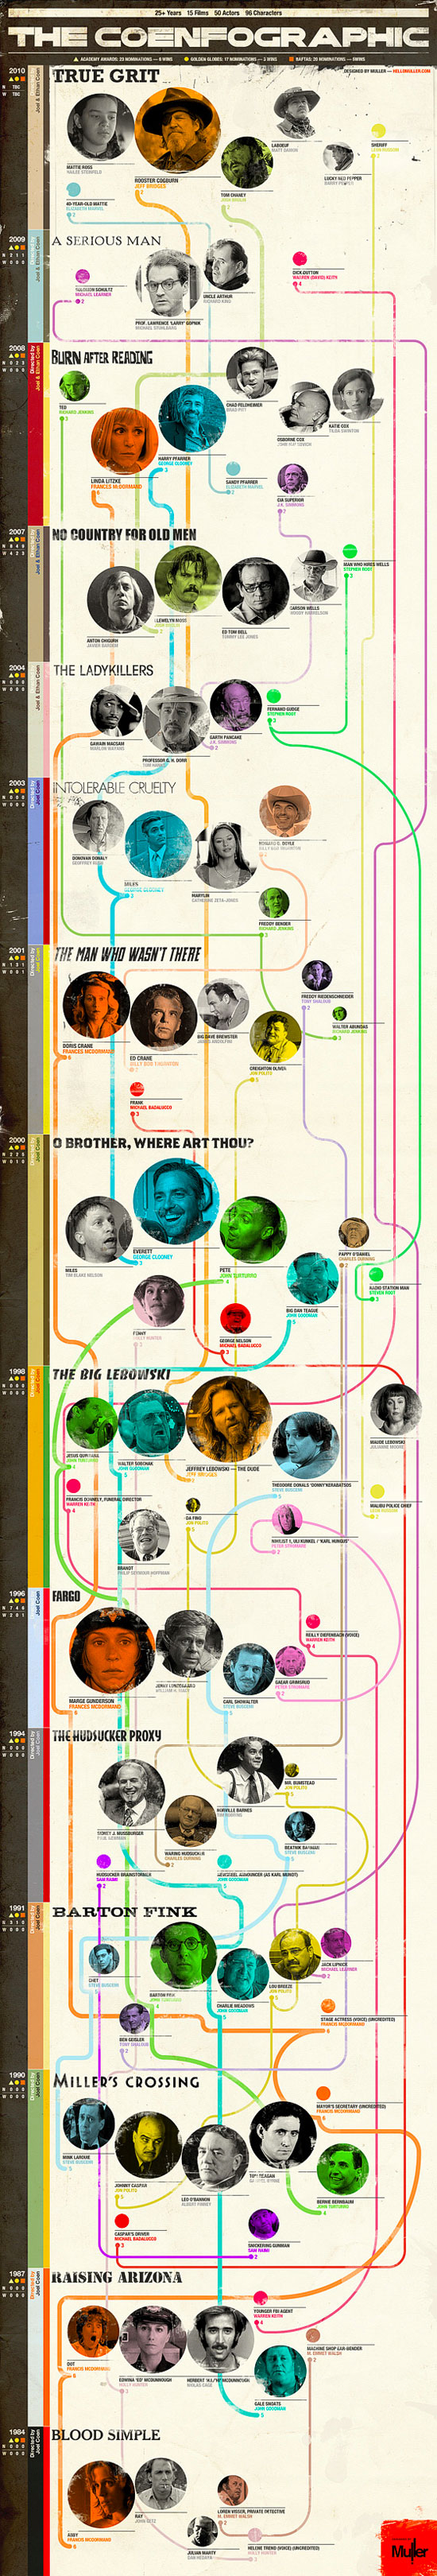 Connecting actors in Coen brothers movies